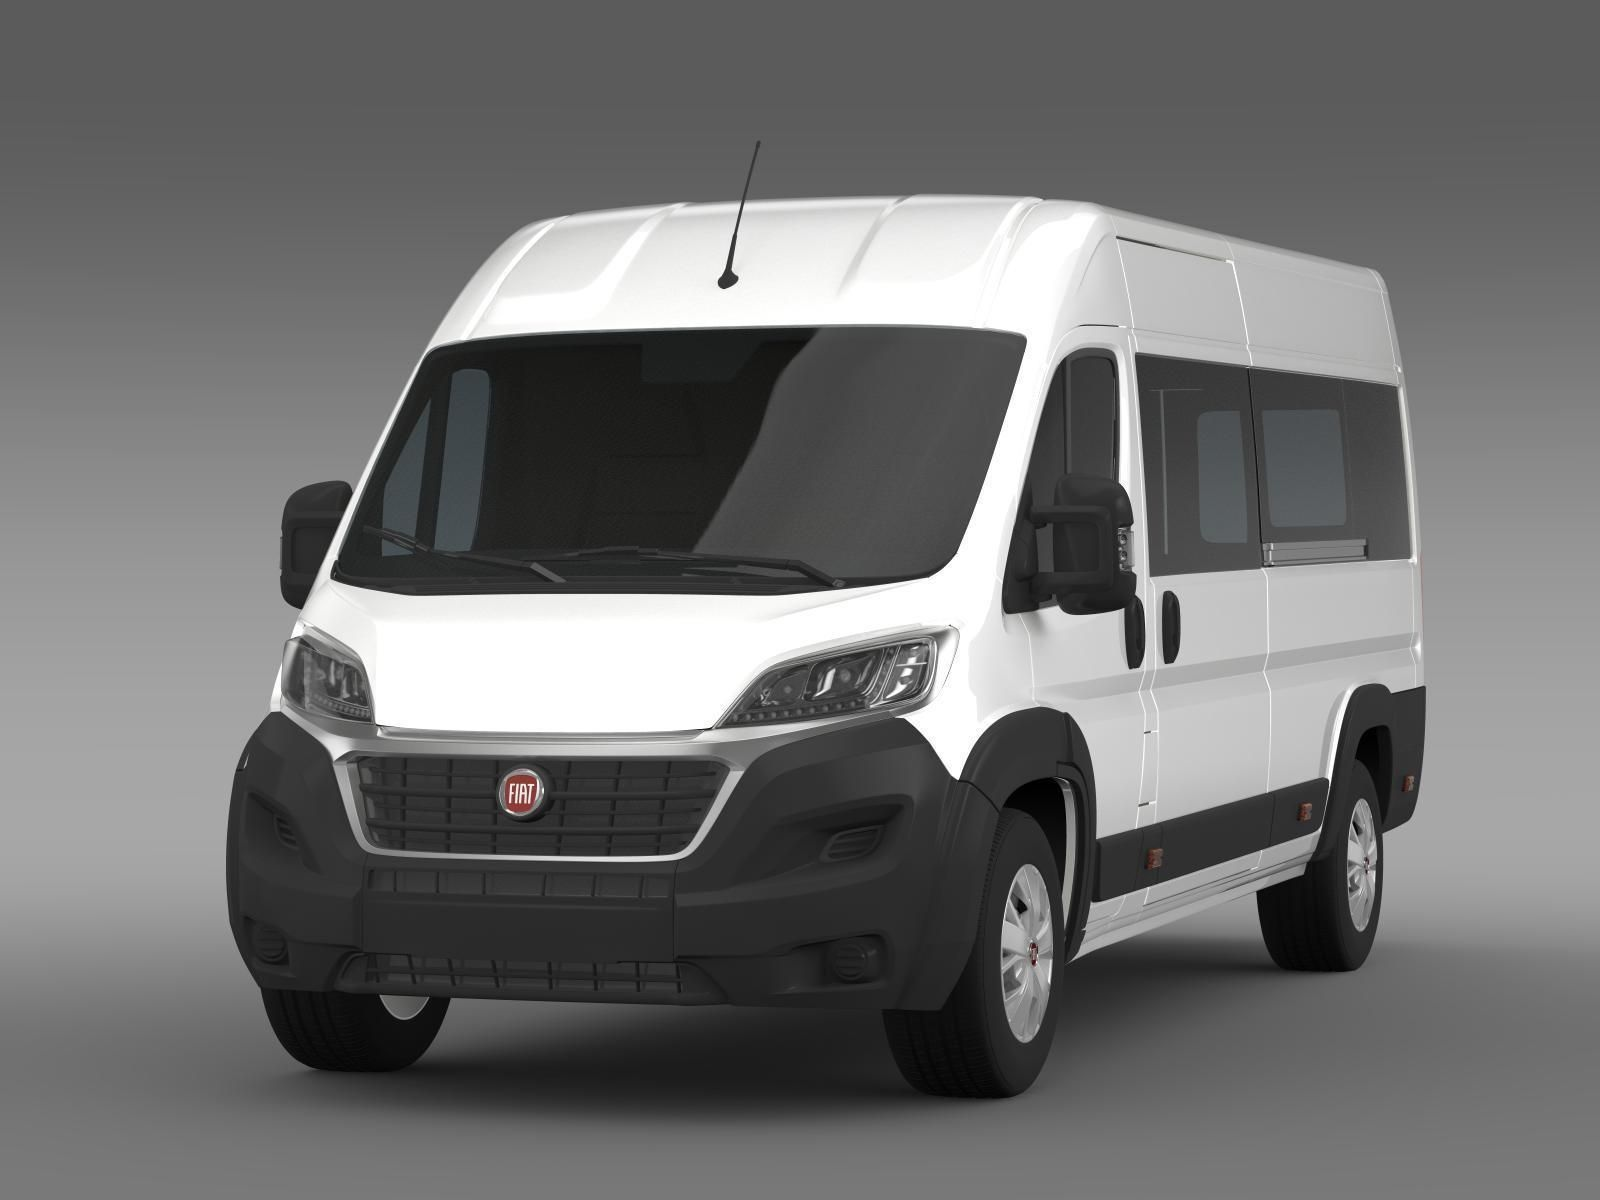 fiat ducato maxi minibus 2015 3d model max obj 3ds fbx c4d lwo lw lws. Black Bedroom Furniture Sets. Home Design Ideas